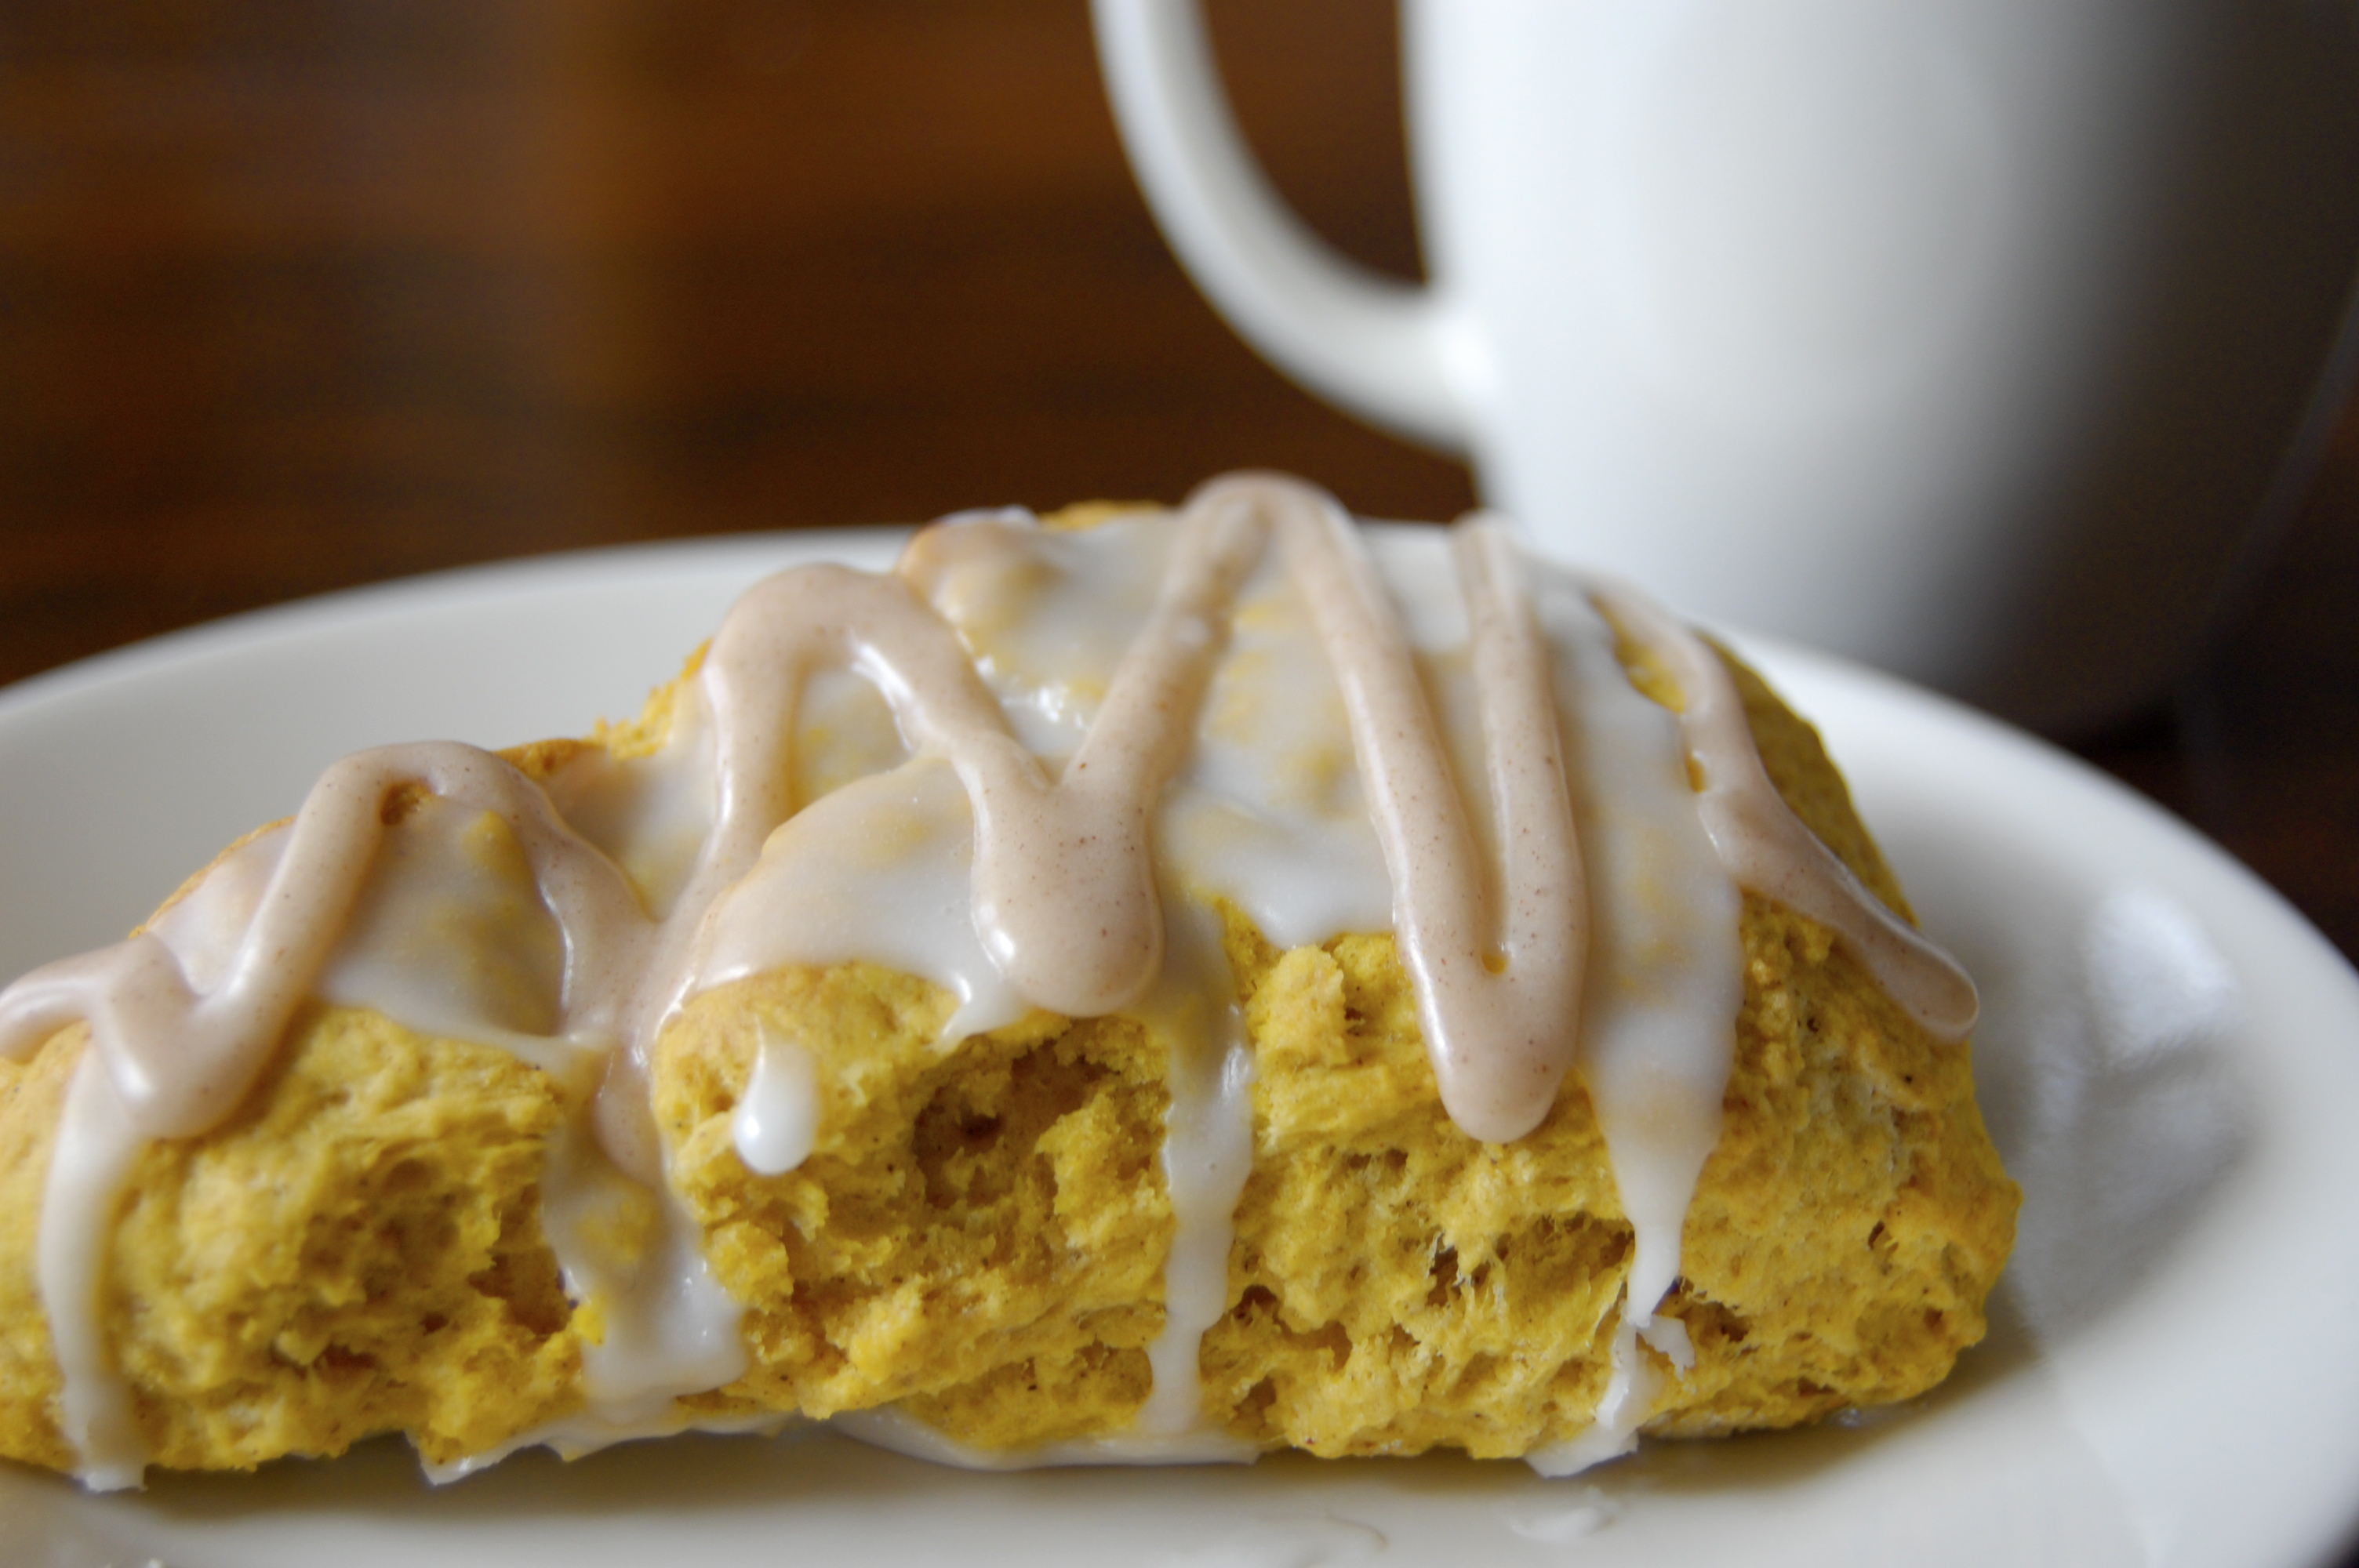 TSR Version of Starbucks Pumpkin Scones by Todd Wilbur